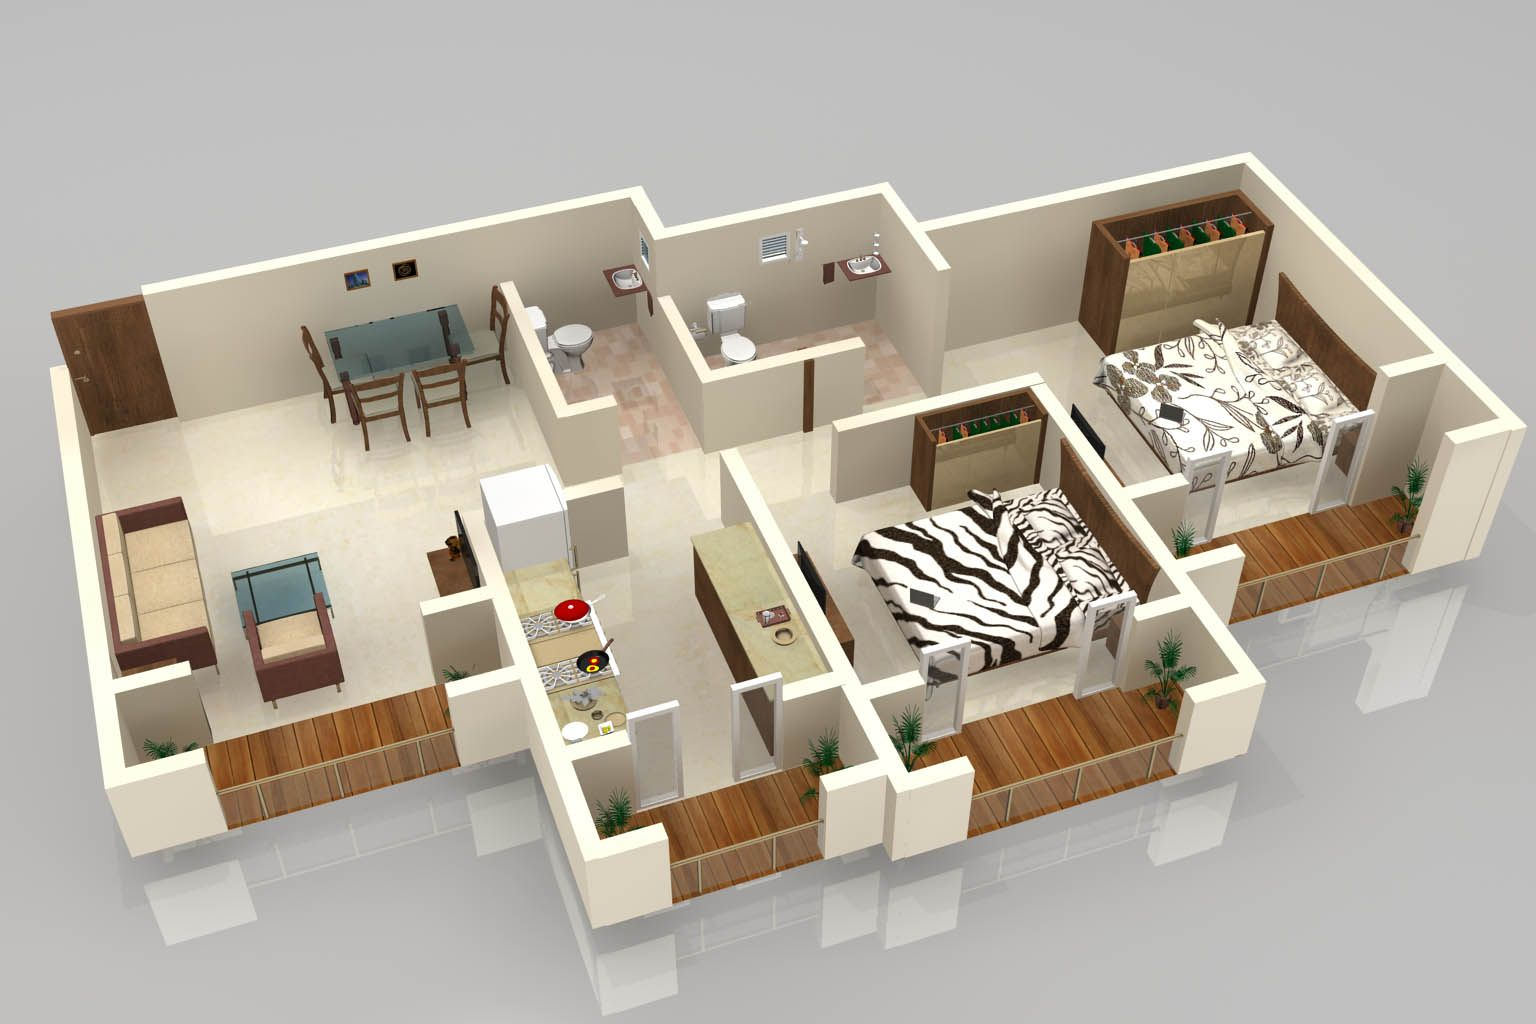 3d floor plan google keresés 2 bedroom floor plans pinterest